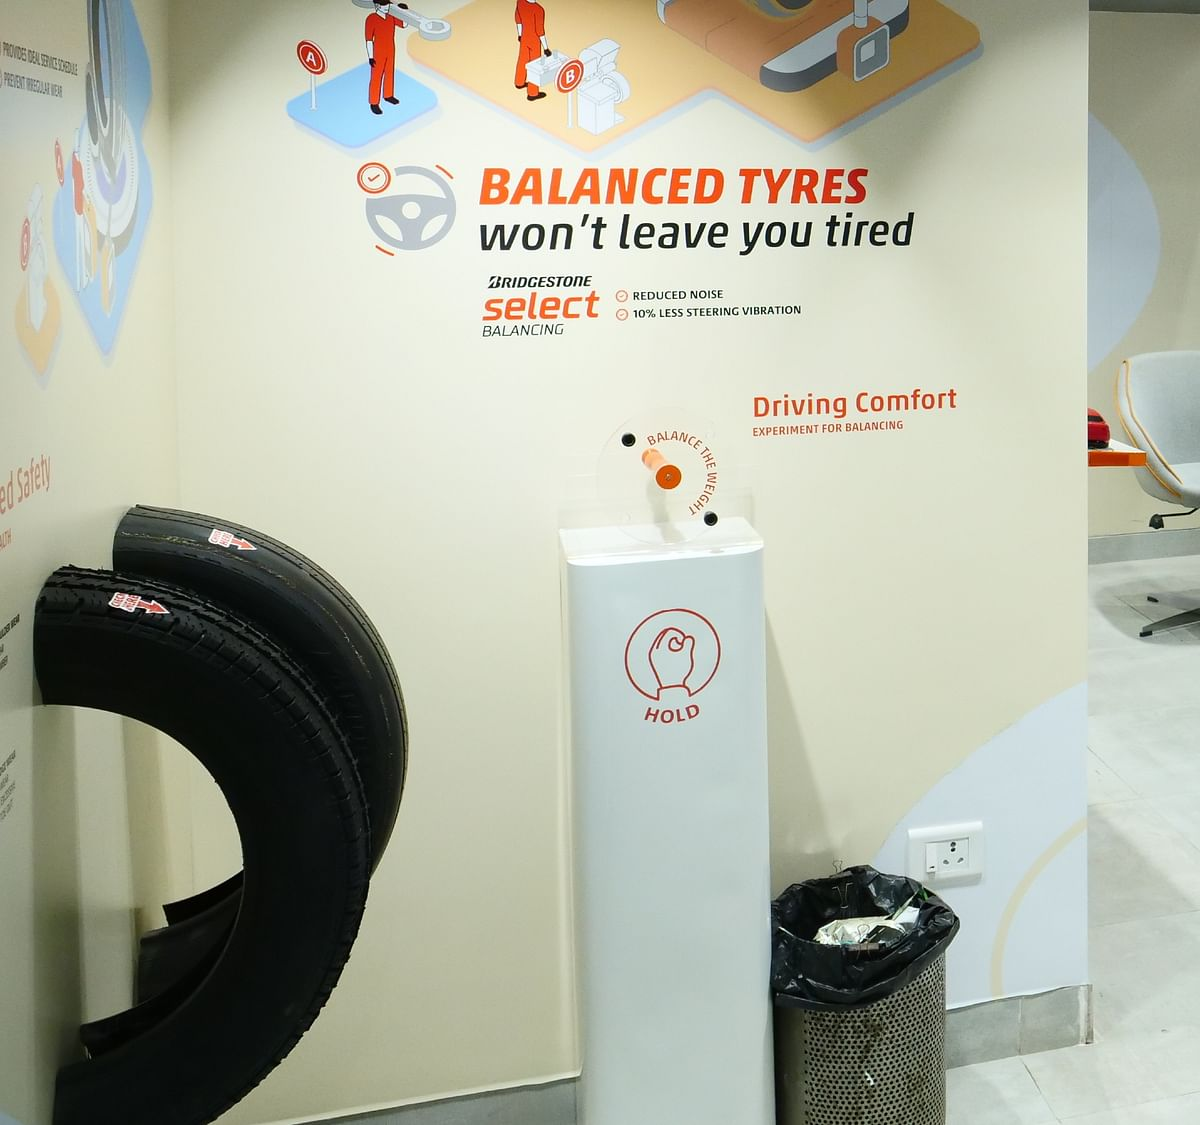 The demostration samples like the worn-out tyres (left), and model gyroscope (middle) give customers a first-hand example of the various tyre-related problems